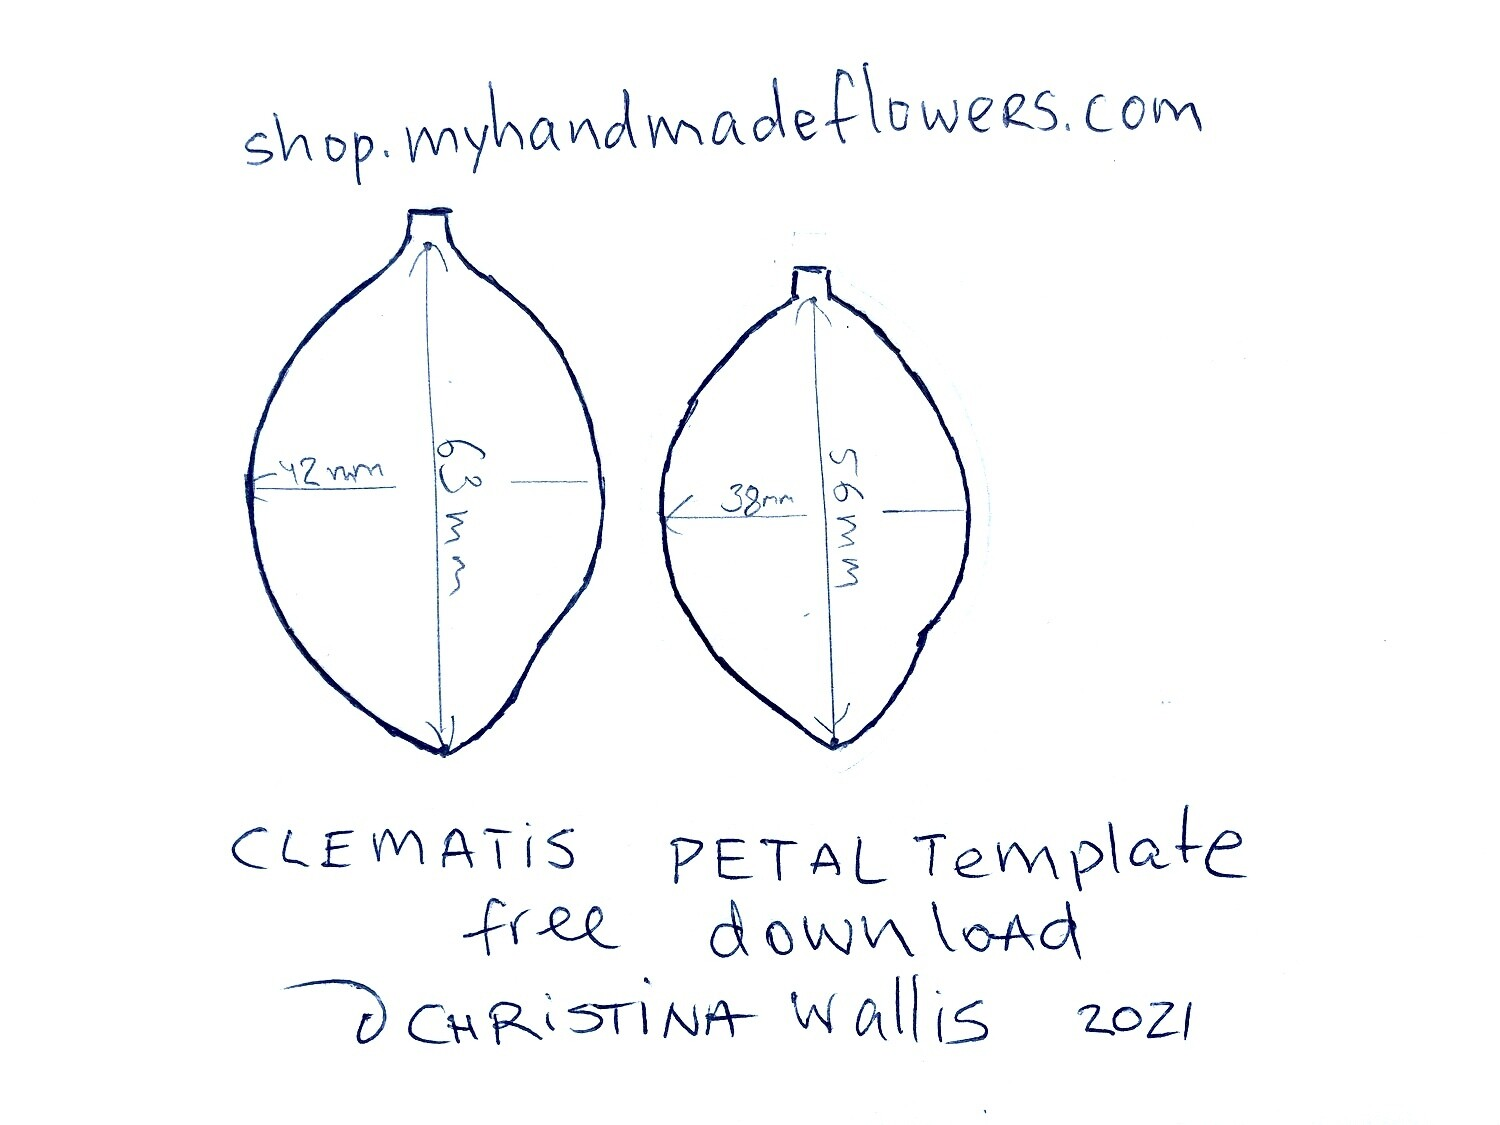 FREE Download: CLEMATIS Cut out TEMPLATE